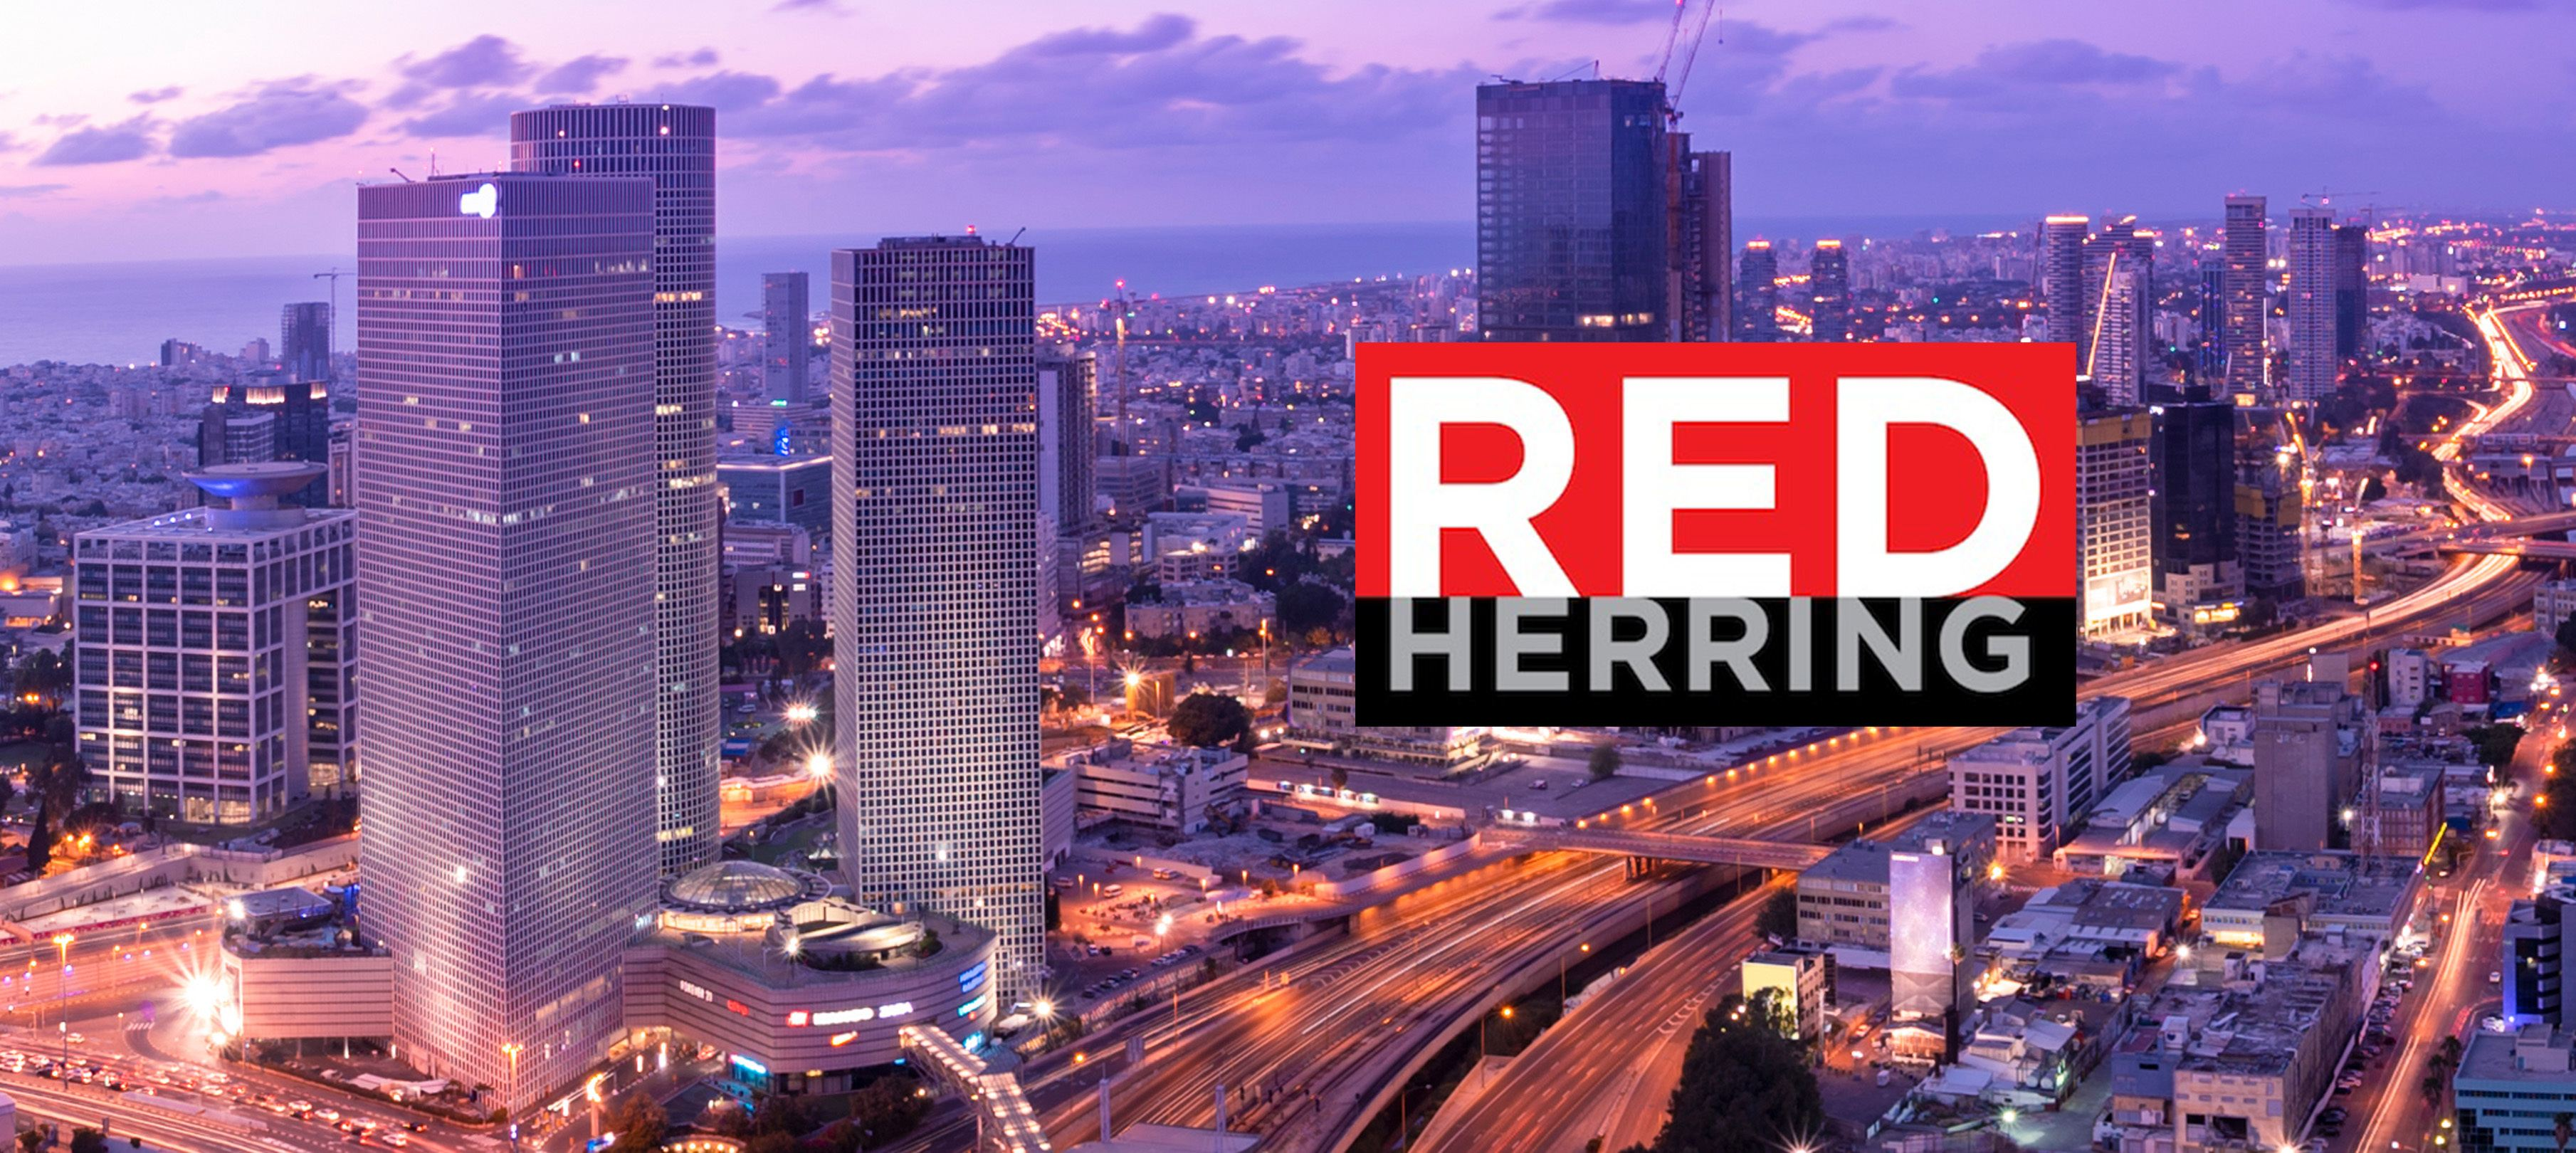 OurCrowd and 18 Israeli startups win 2016 Red Herring Awards